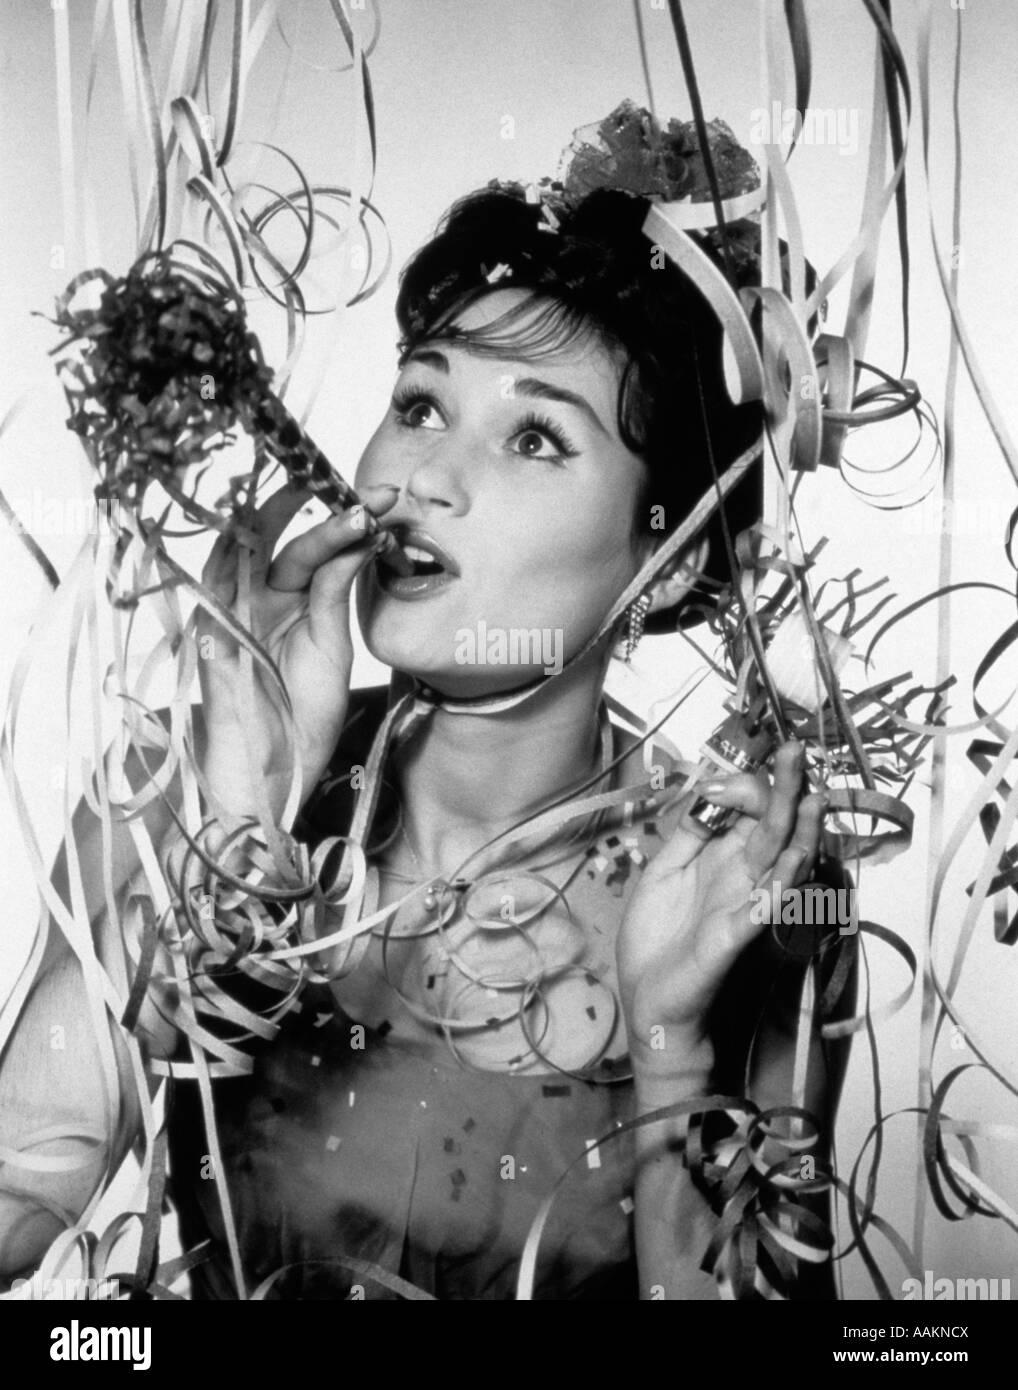 http://c8.alamy.com/comp/AAKNCX/1950s-1960s-woman-blowing-noisemaker-amid-party-confetti-and-streamers-AAKNCX.jpg